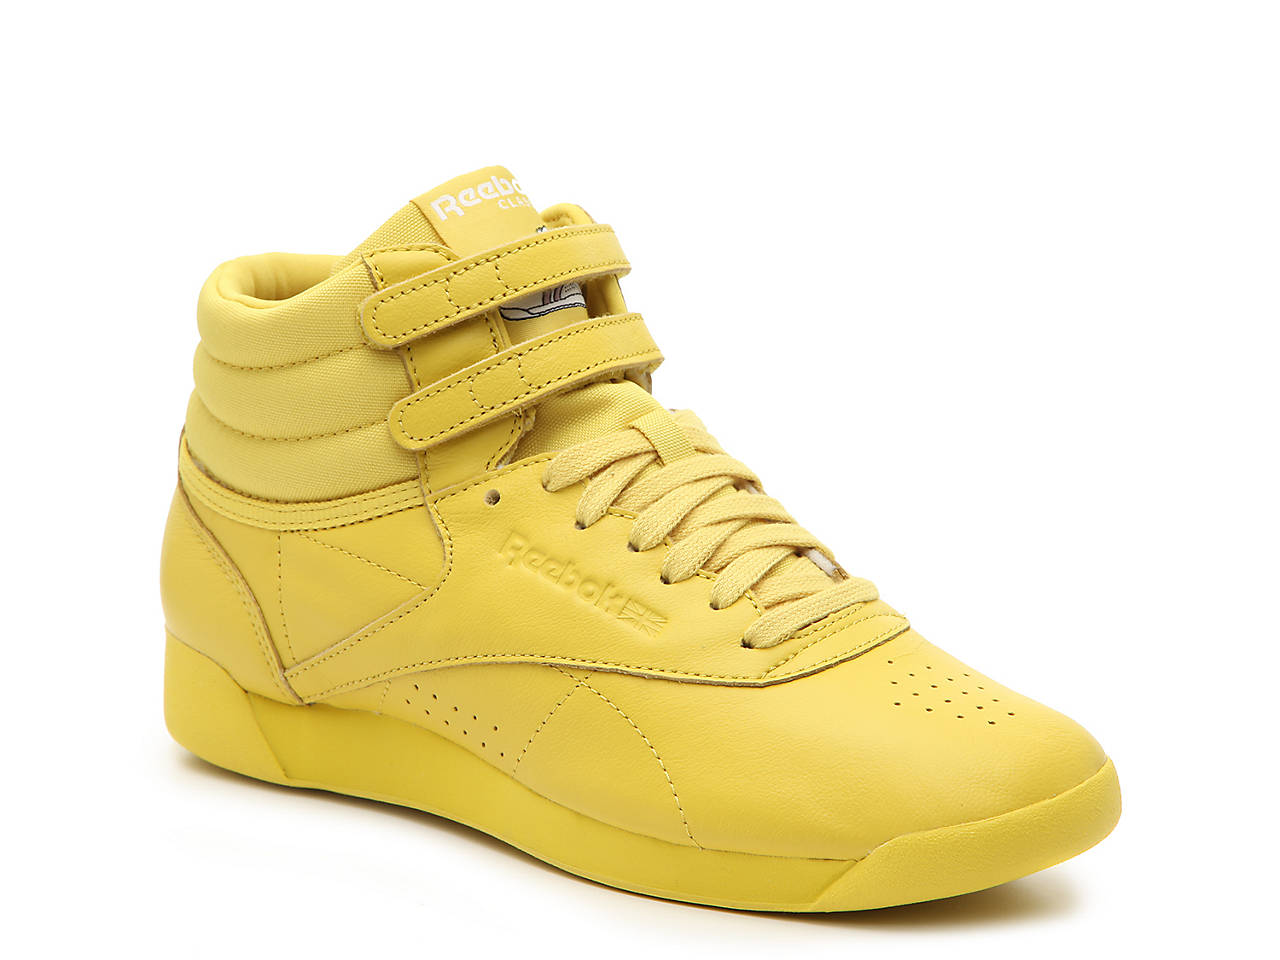 Reebok Freestyle Hi High-Top Sneaker - Women s Women s Shoes  bd75a54da